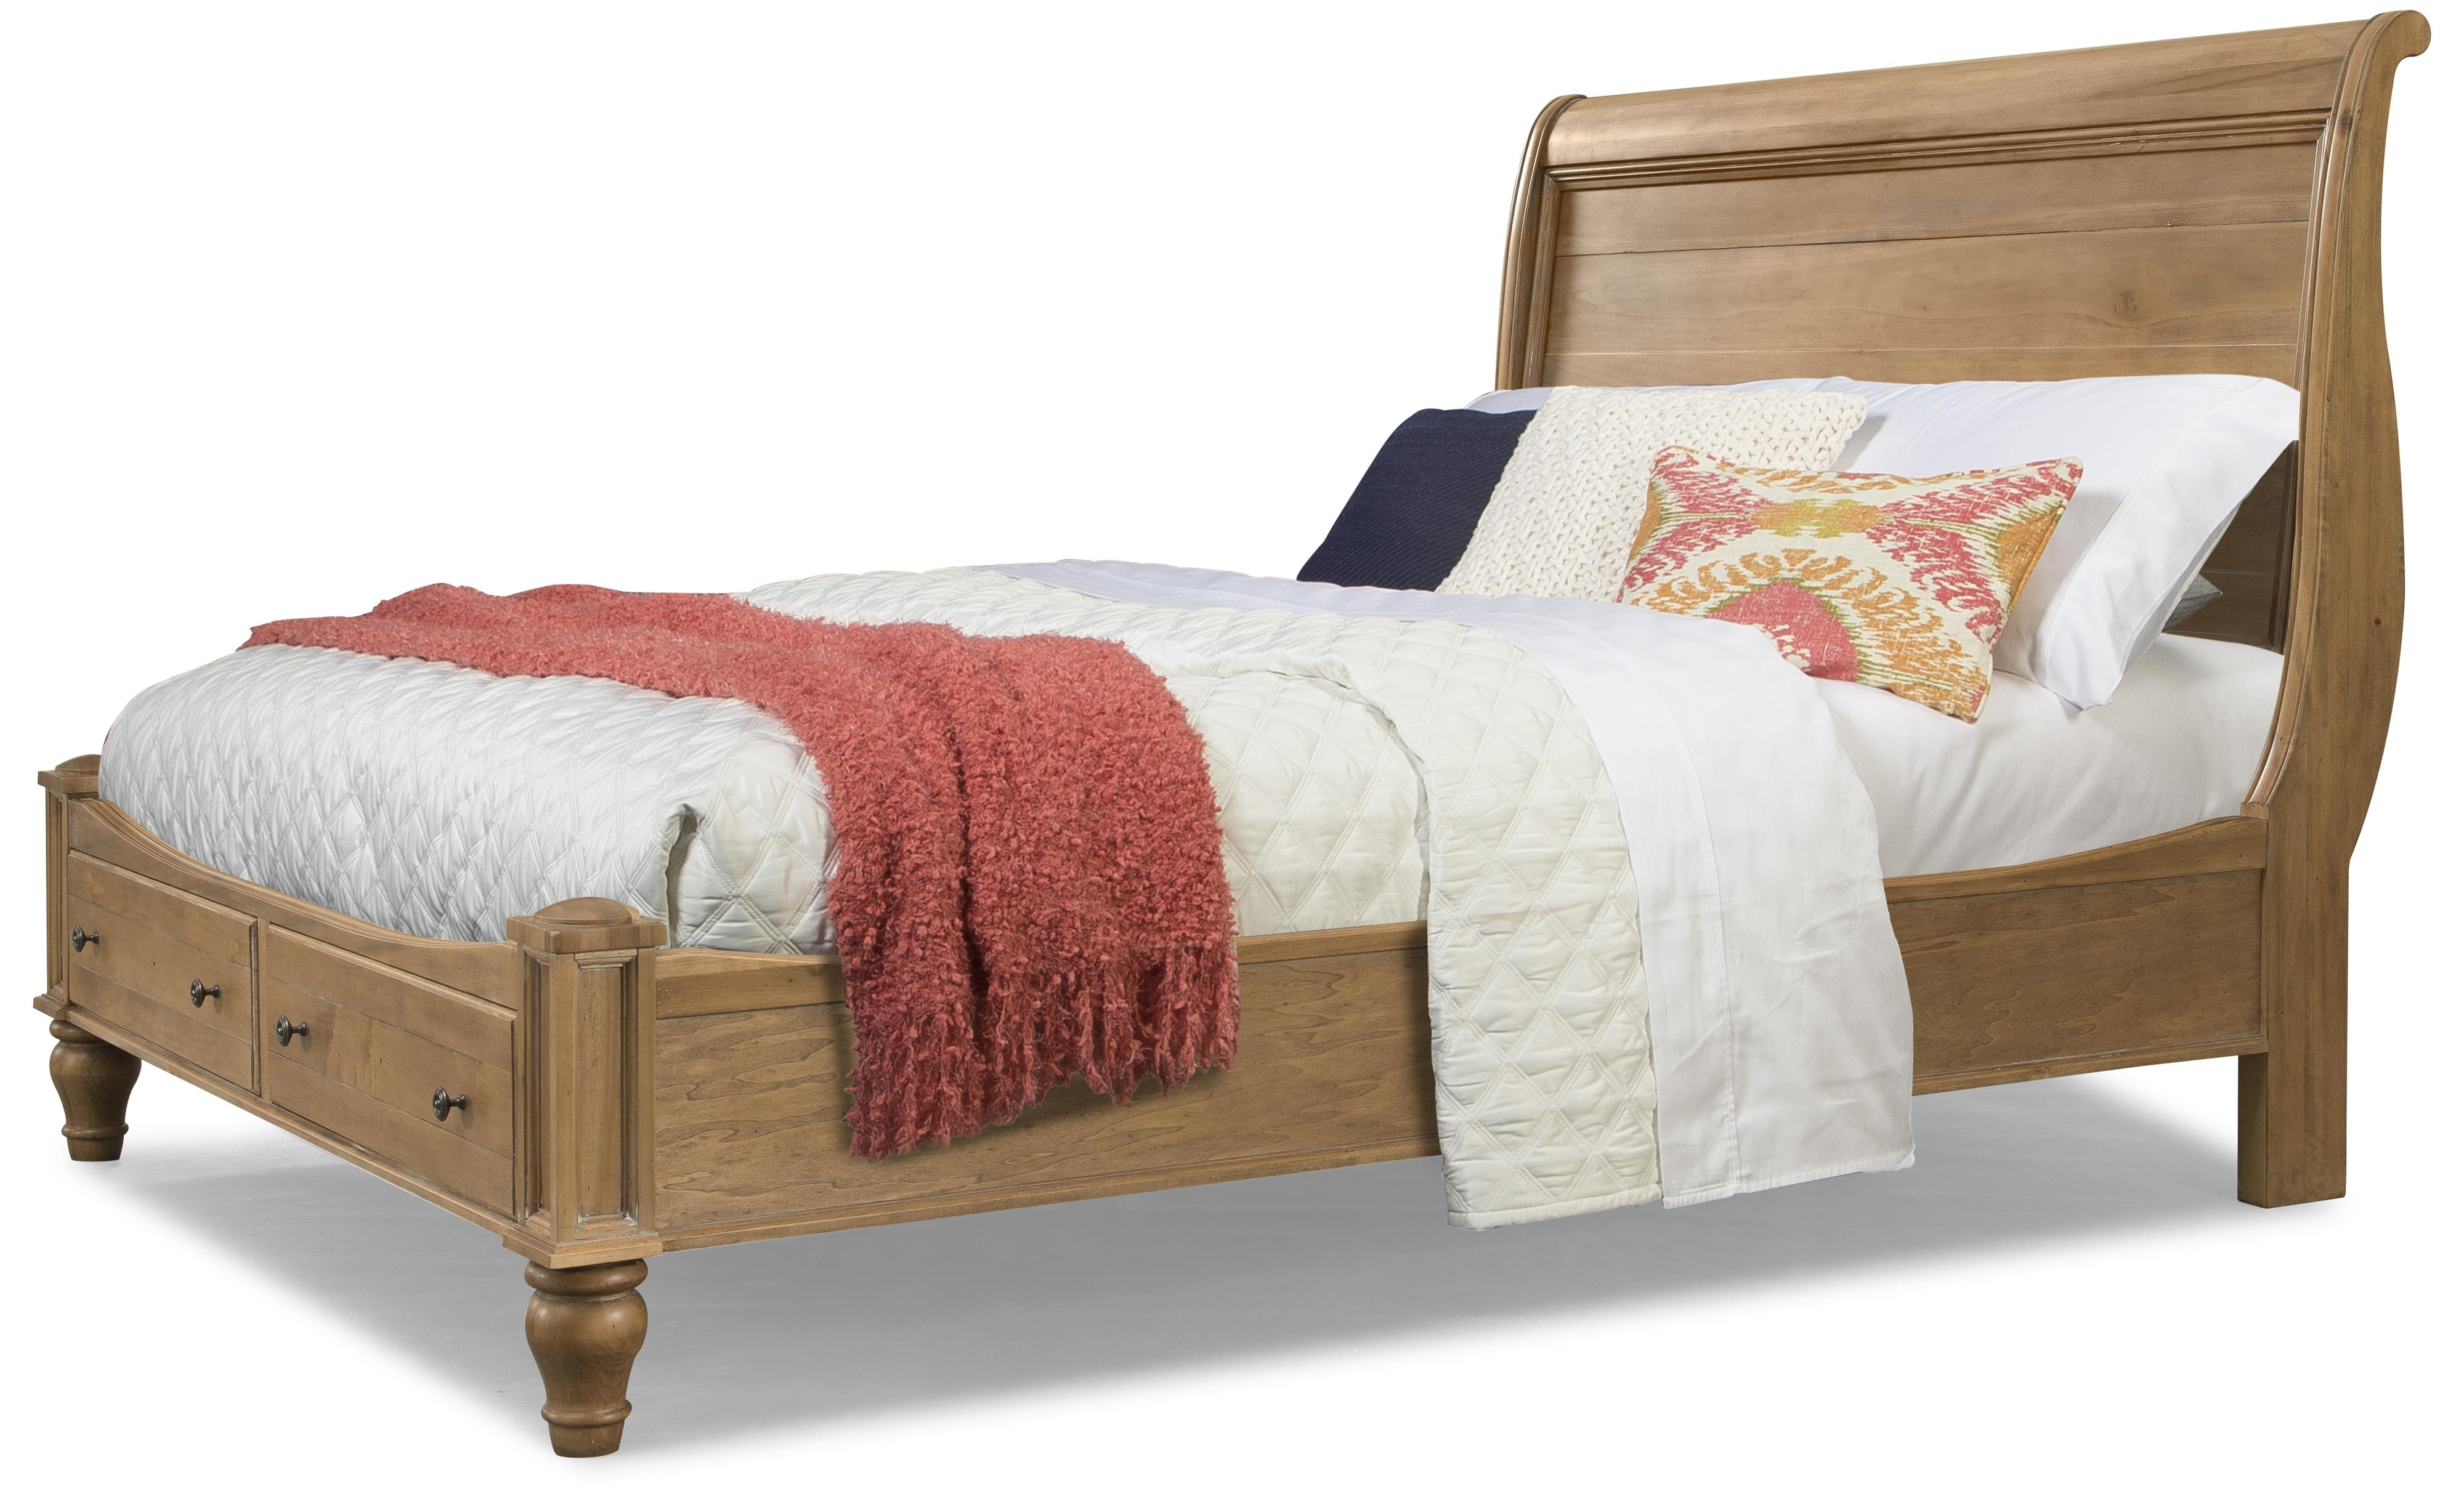 Cresent Fine Furniture Cottage Queen Natural Storage Sleigh Bed - Item Number: 201-232QH+QFS+QRS